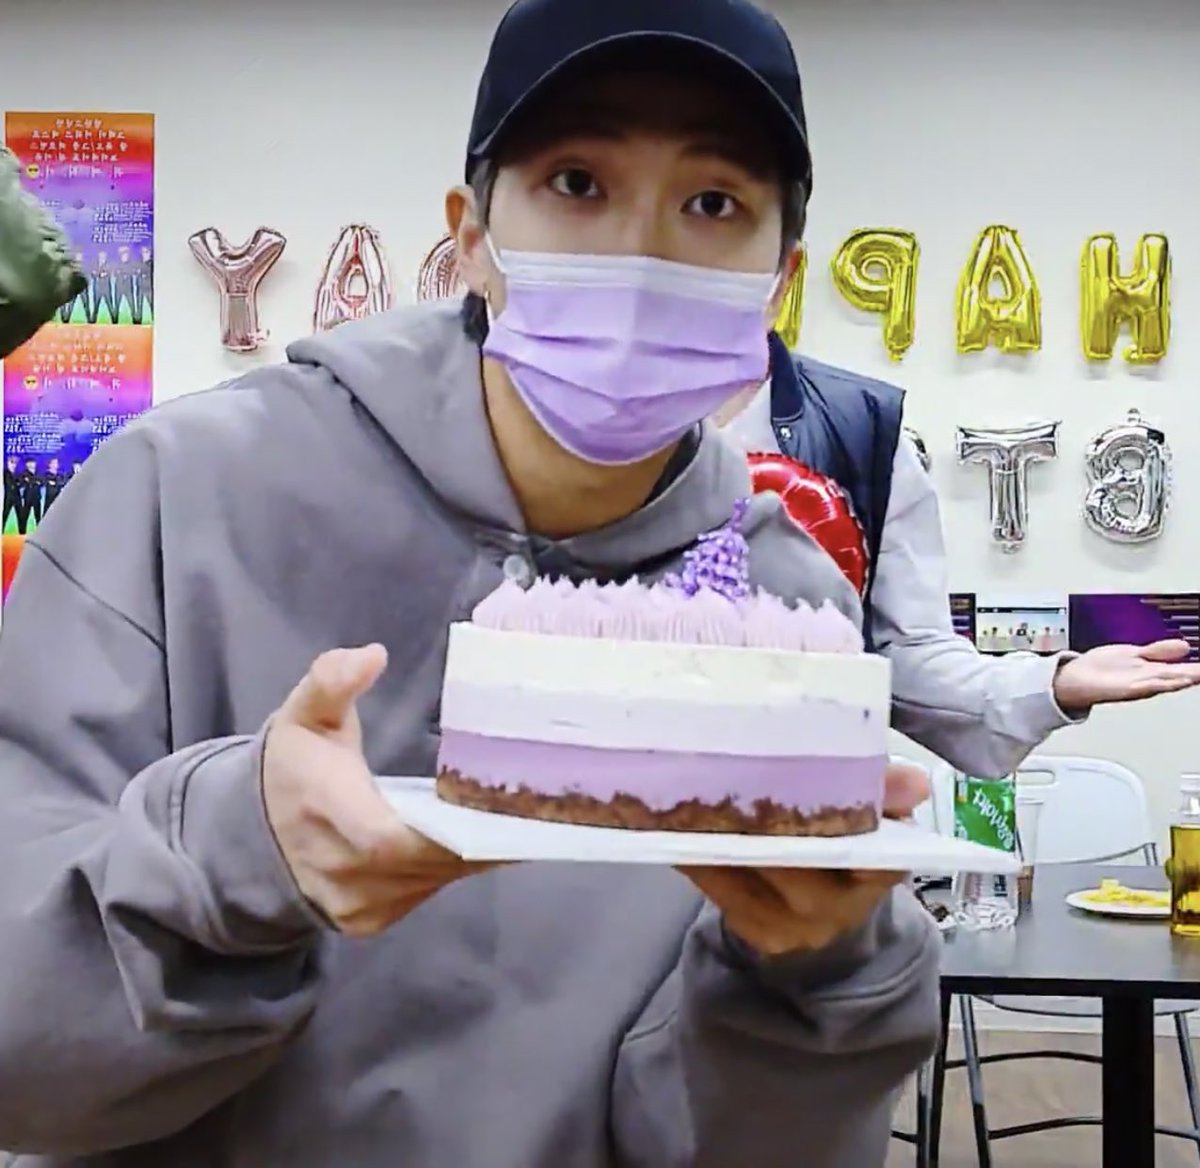 """BTSARMY Kitchen & Bar⁷ on Twitter: """"The cake that the boys use to celebrate their Grammy nomination in the Live is from A Twosome Place. One of their favorite bakery picks for"""